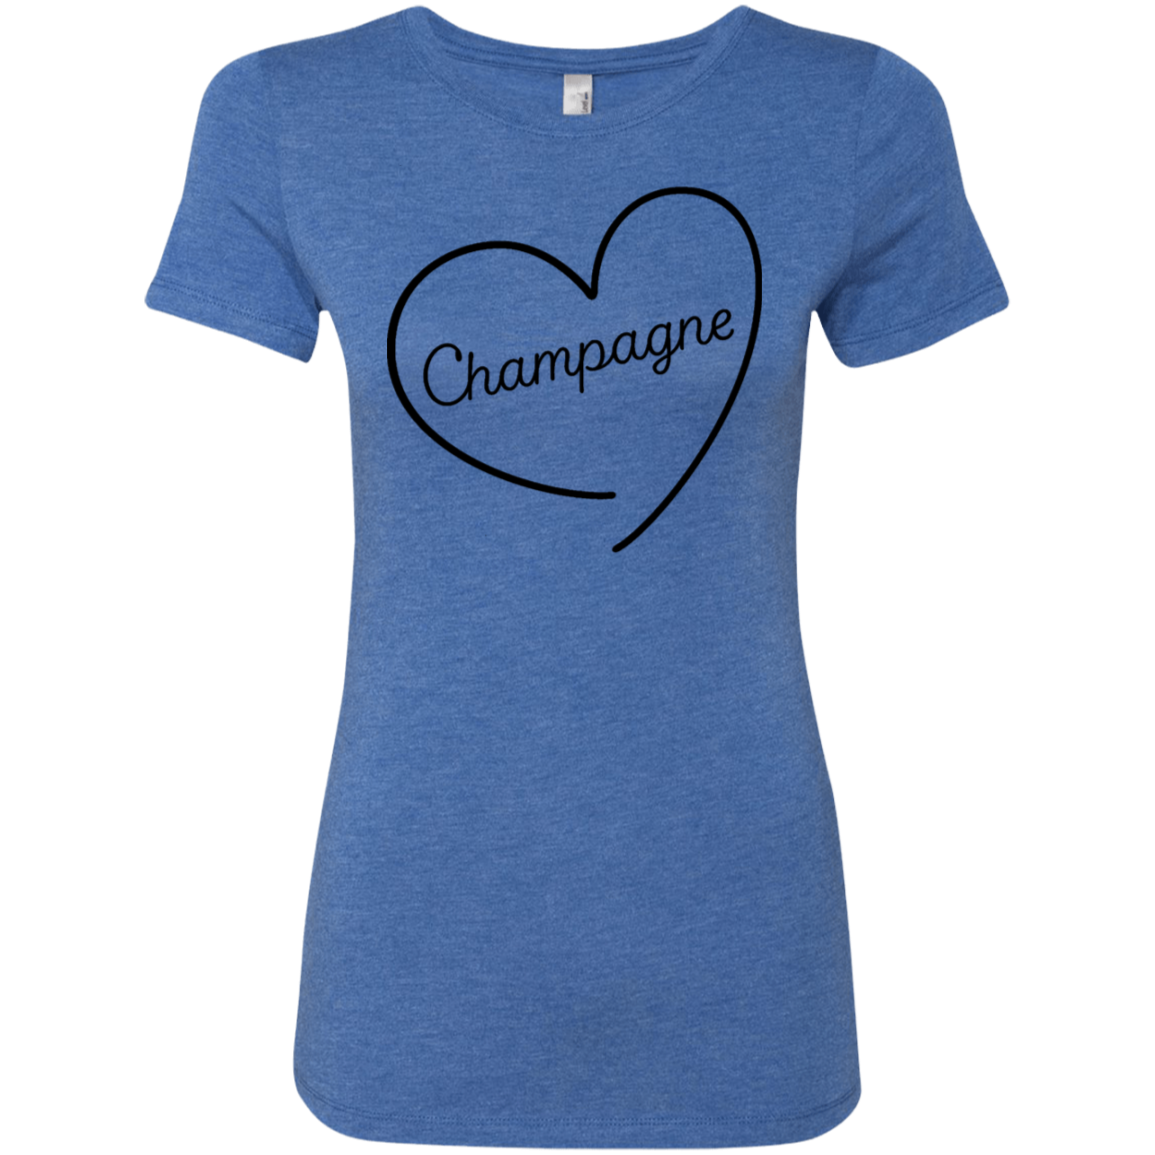 Champagne Love Women's Classic Tee - Trendy Tees